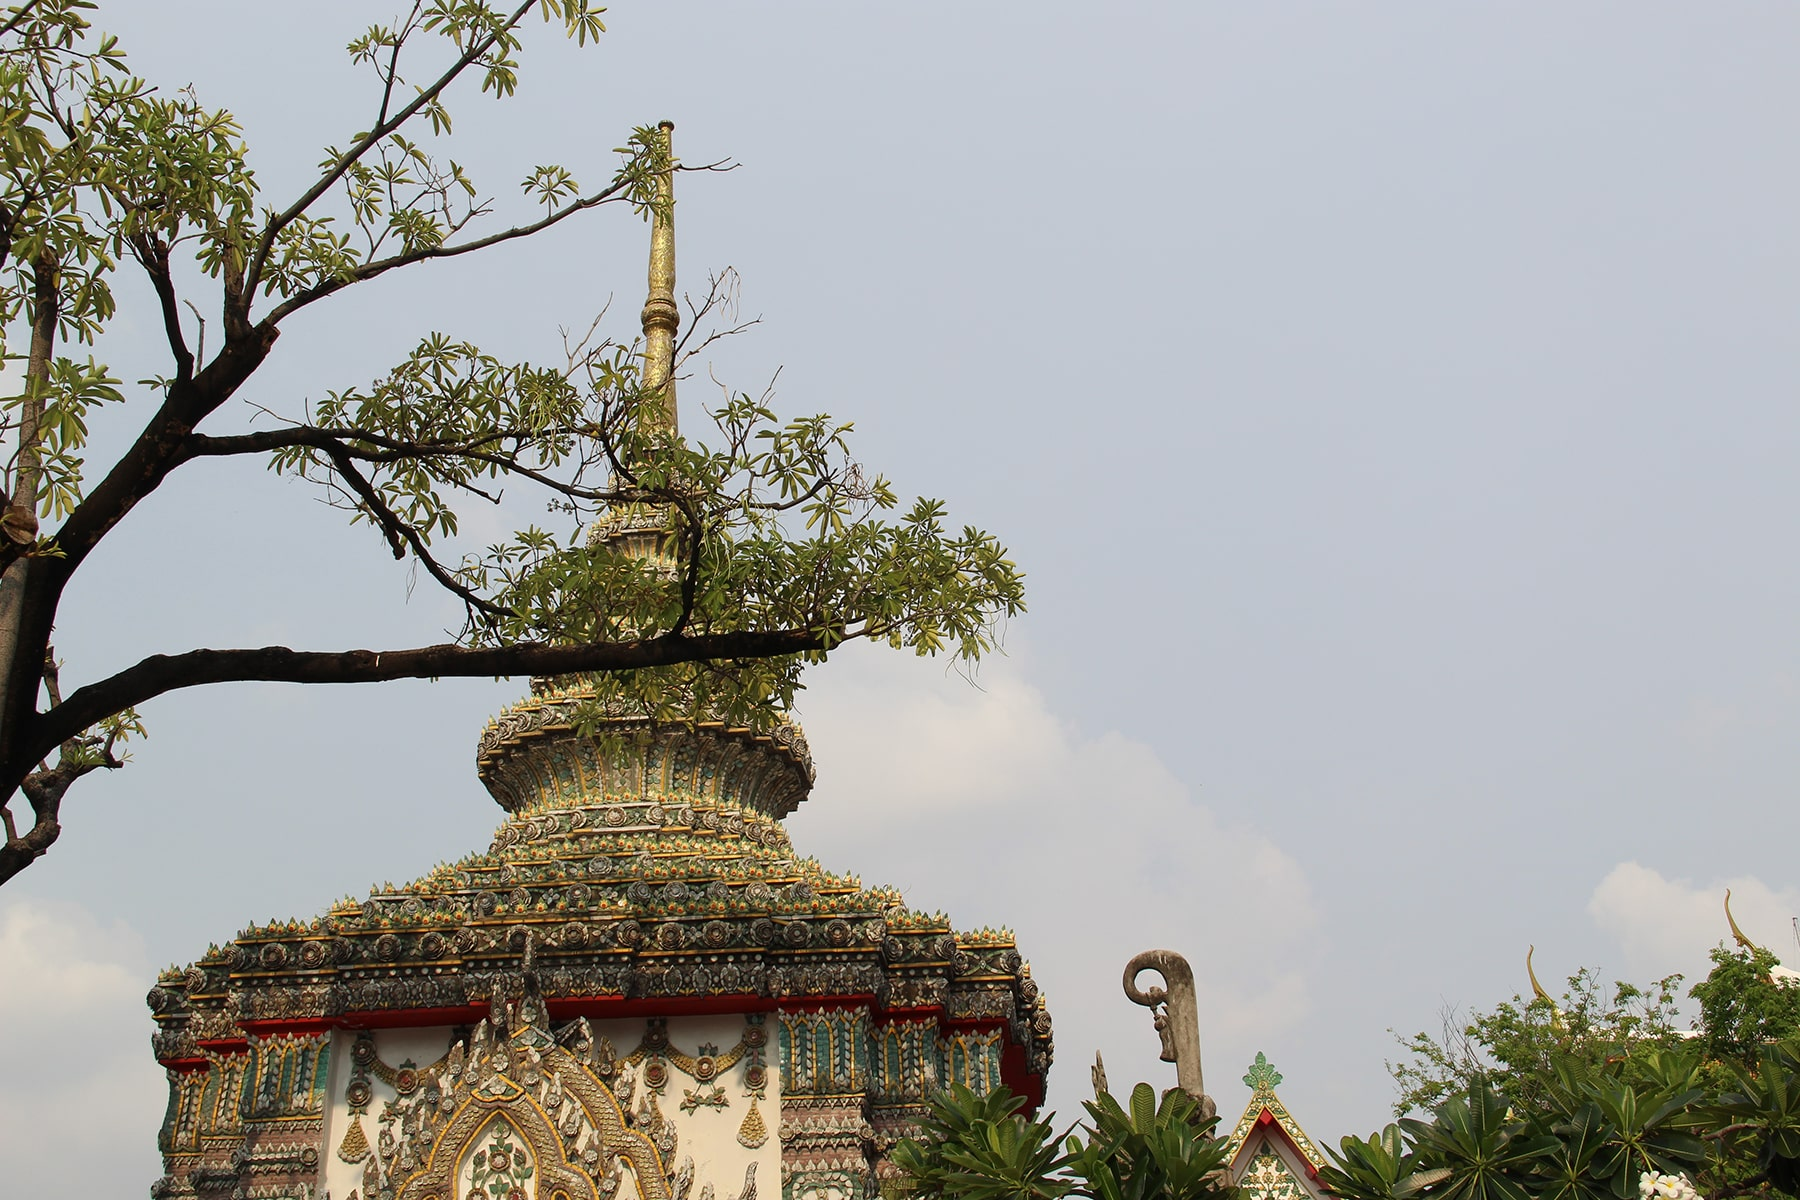 Roof a temple in Wat Pho, Bangkok behind a tree